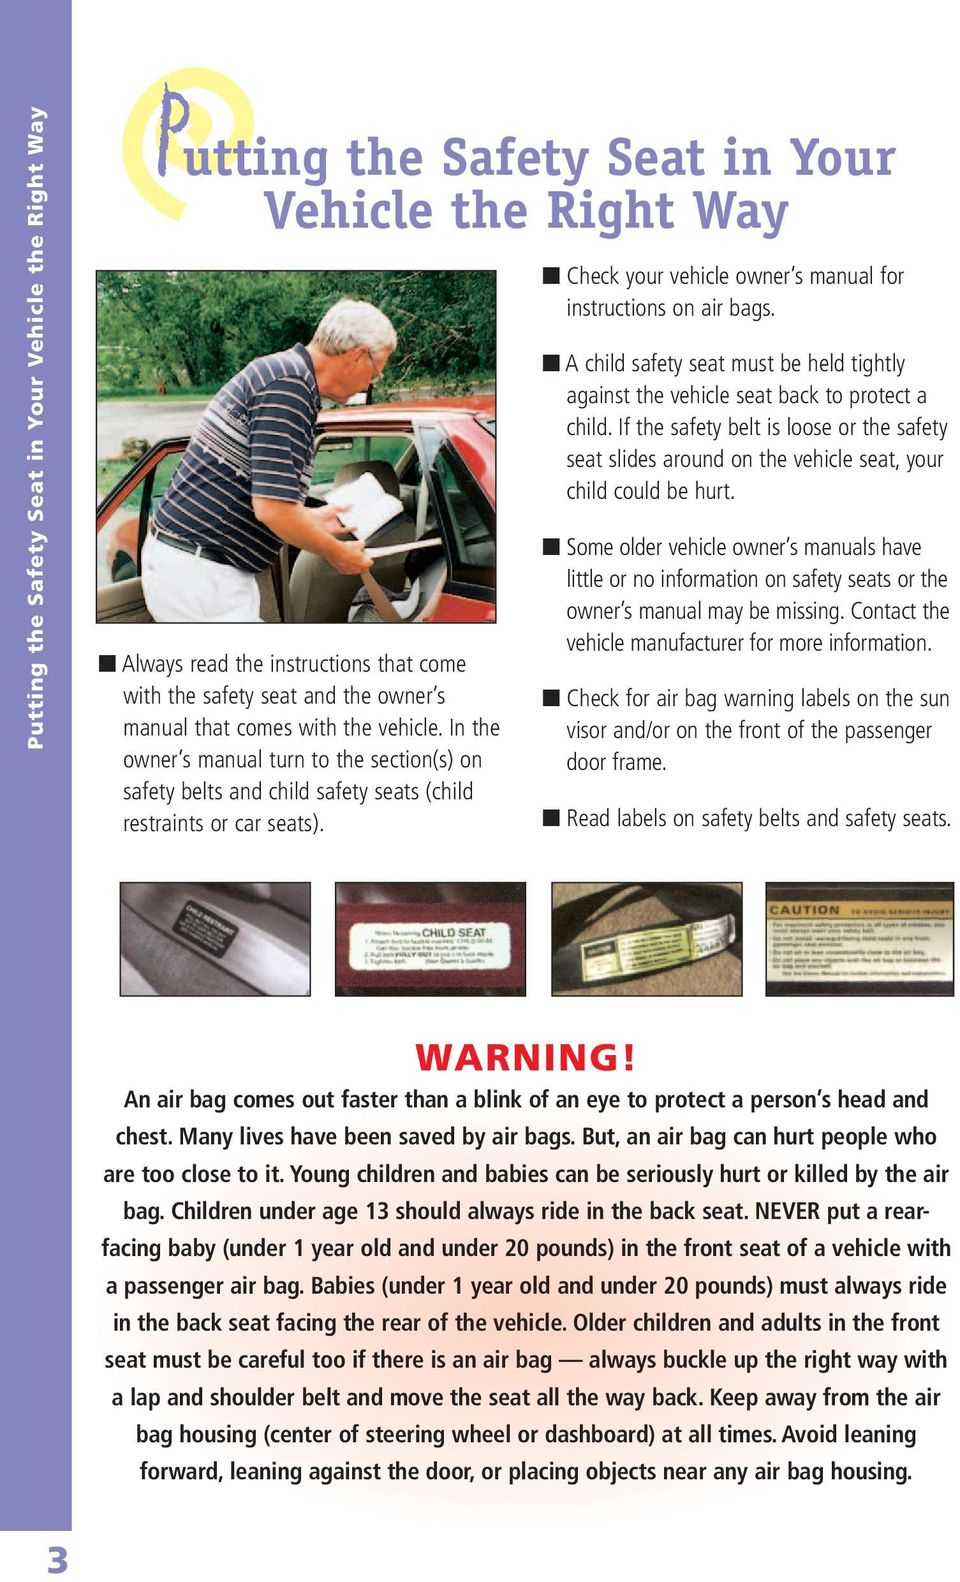 Check your vehicle owner s manual for instructions on air bags. A child safety seat must be held tightly against the vehicle seat back to protect a child.